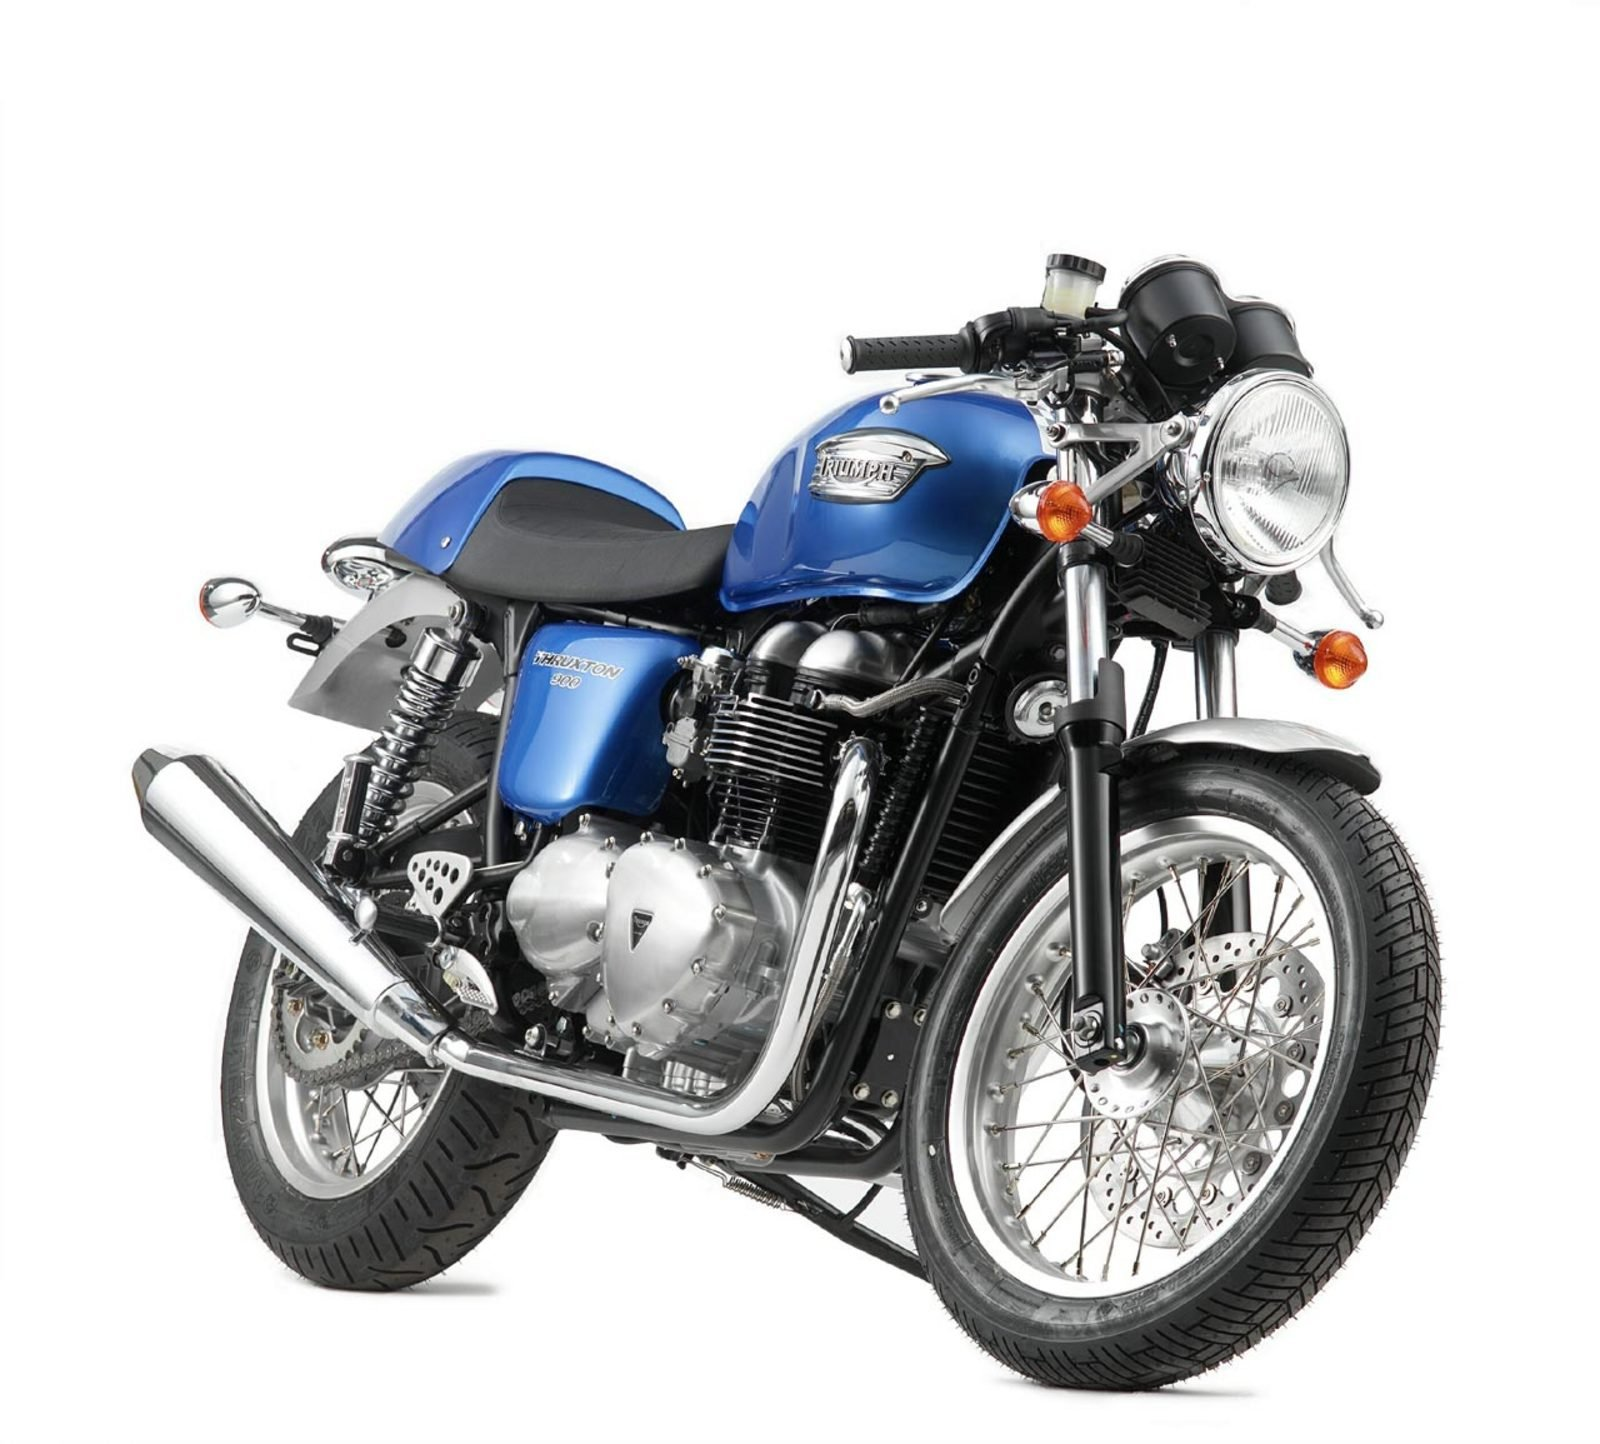 2006 triumph thruxton 900 review top speed. Black Bedroom Furniture Sets. Home Design Ideas